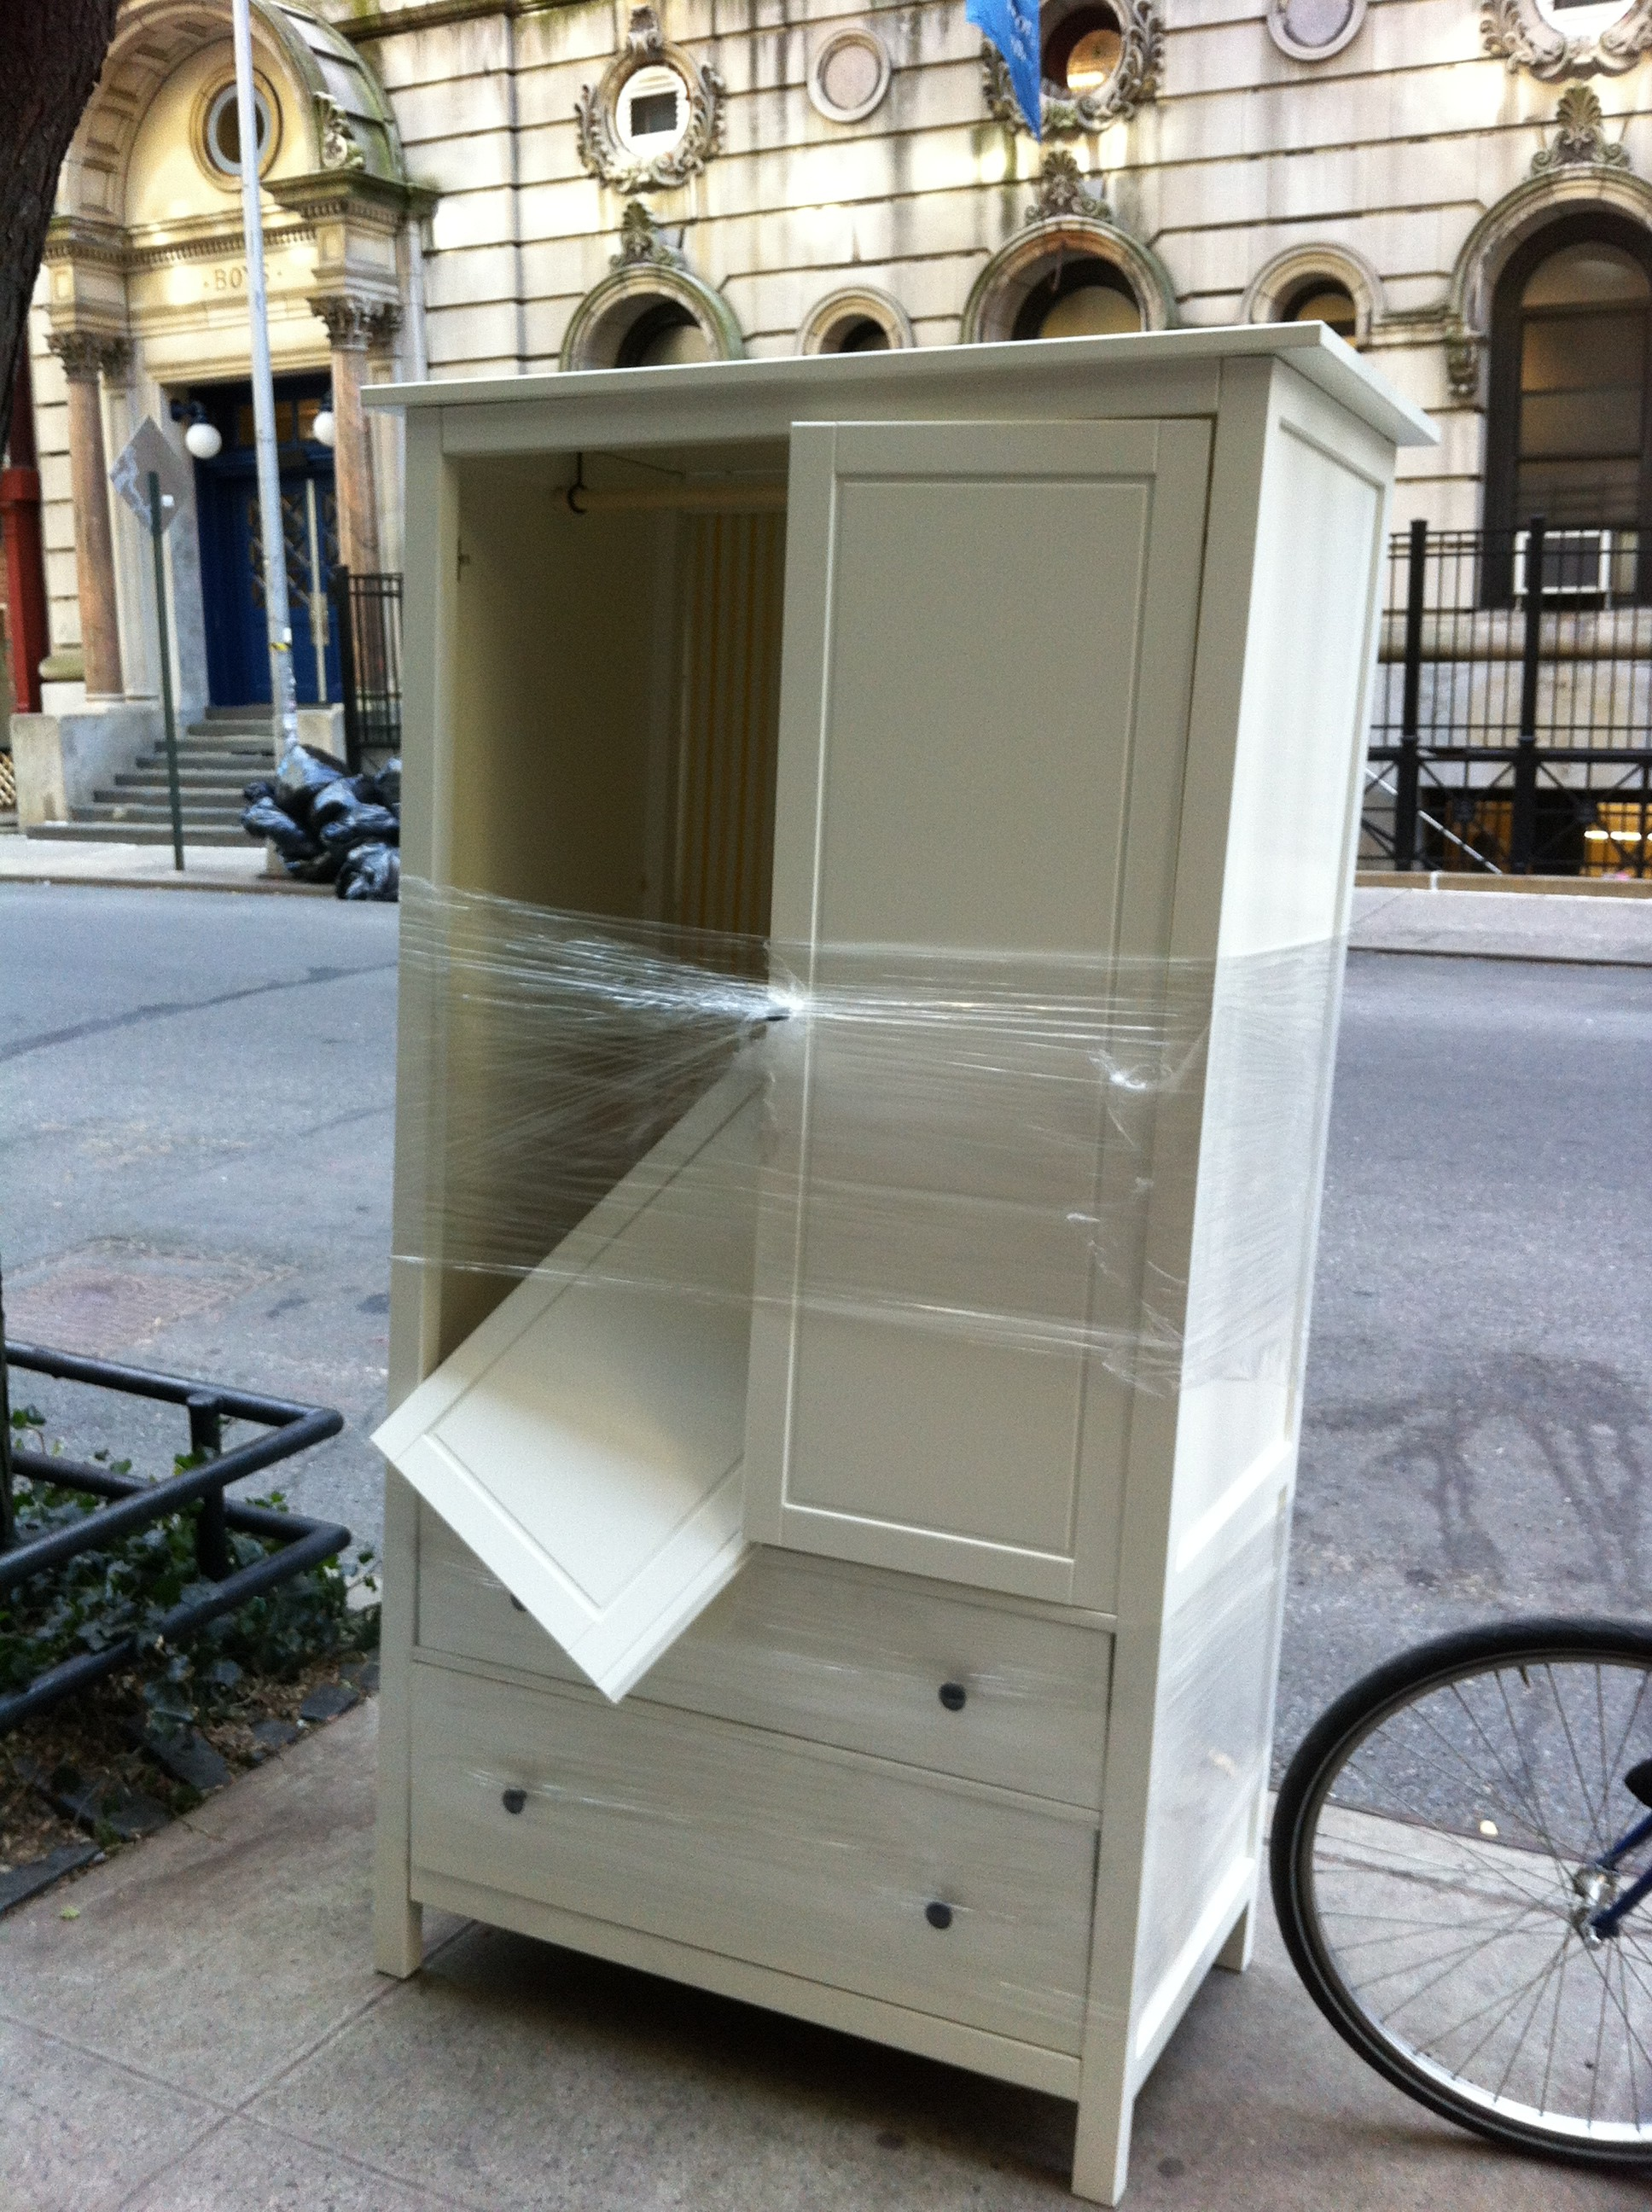 A pic of a FREE white armoire on NYC street